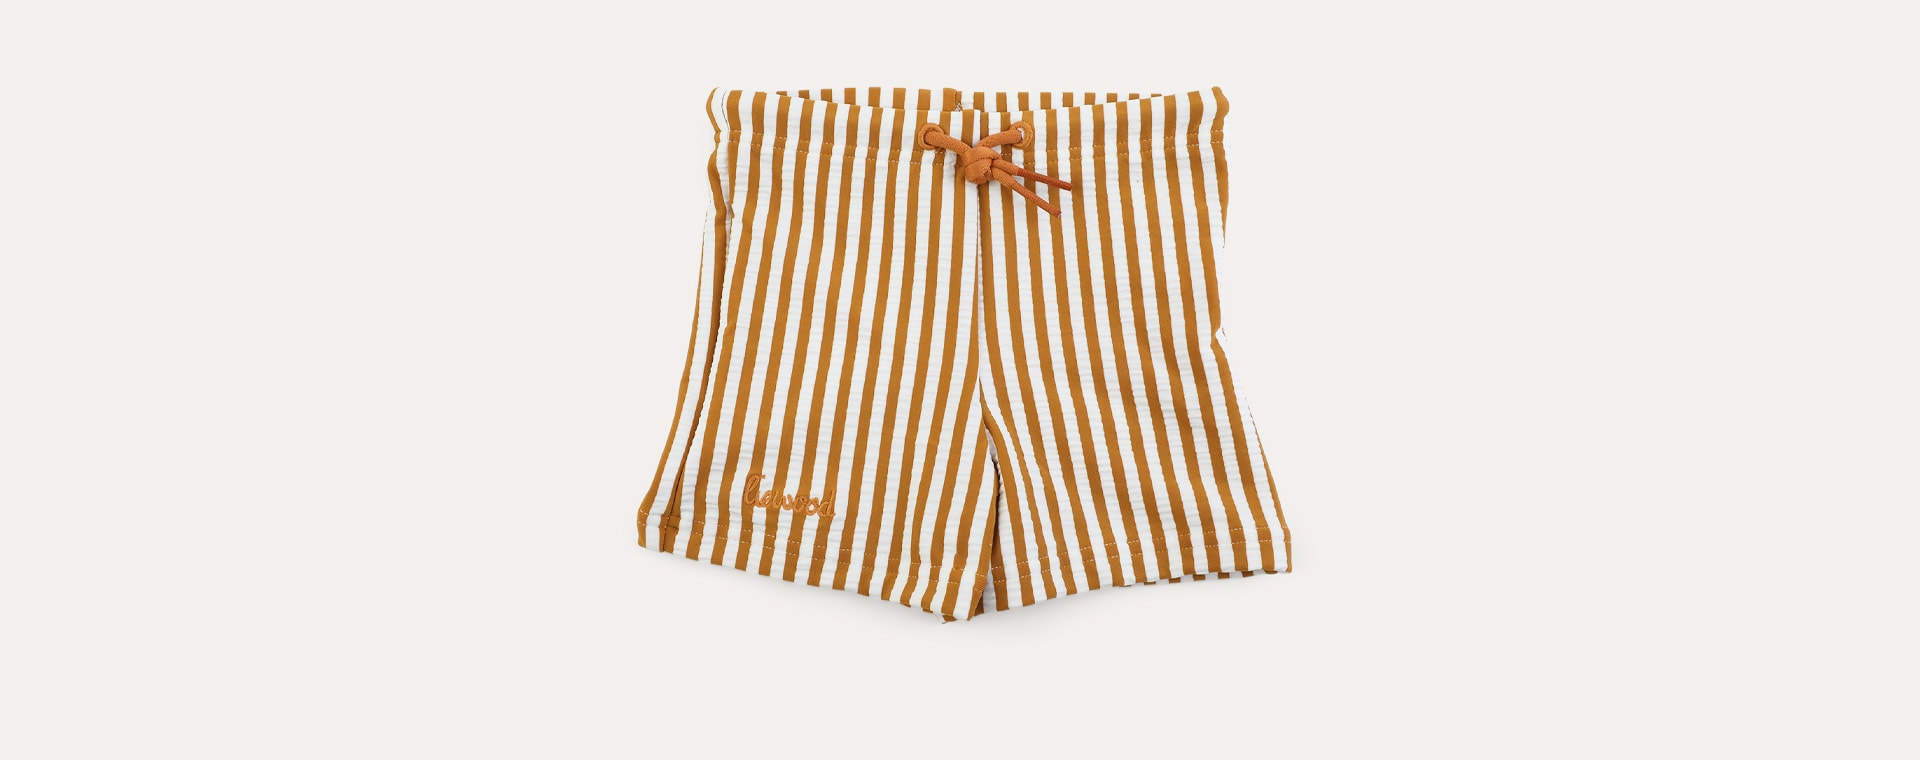 stripe: Mustard/white Liewood Otto Swim Pants Seersucker